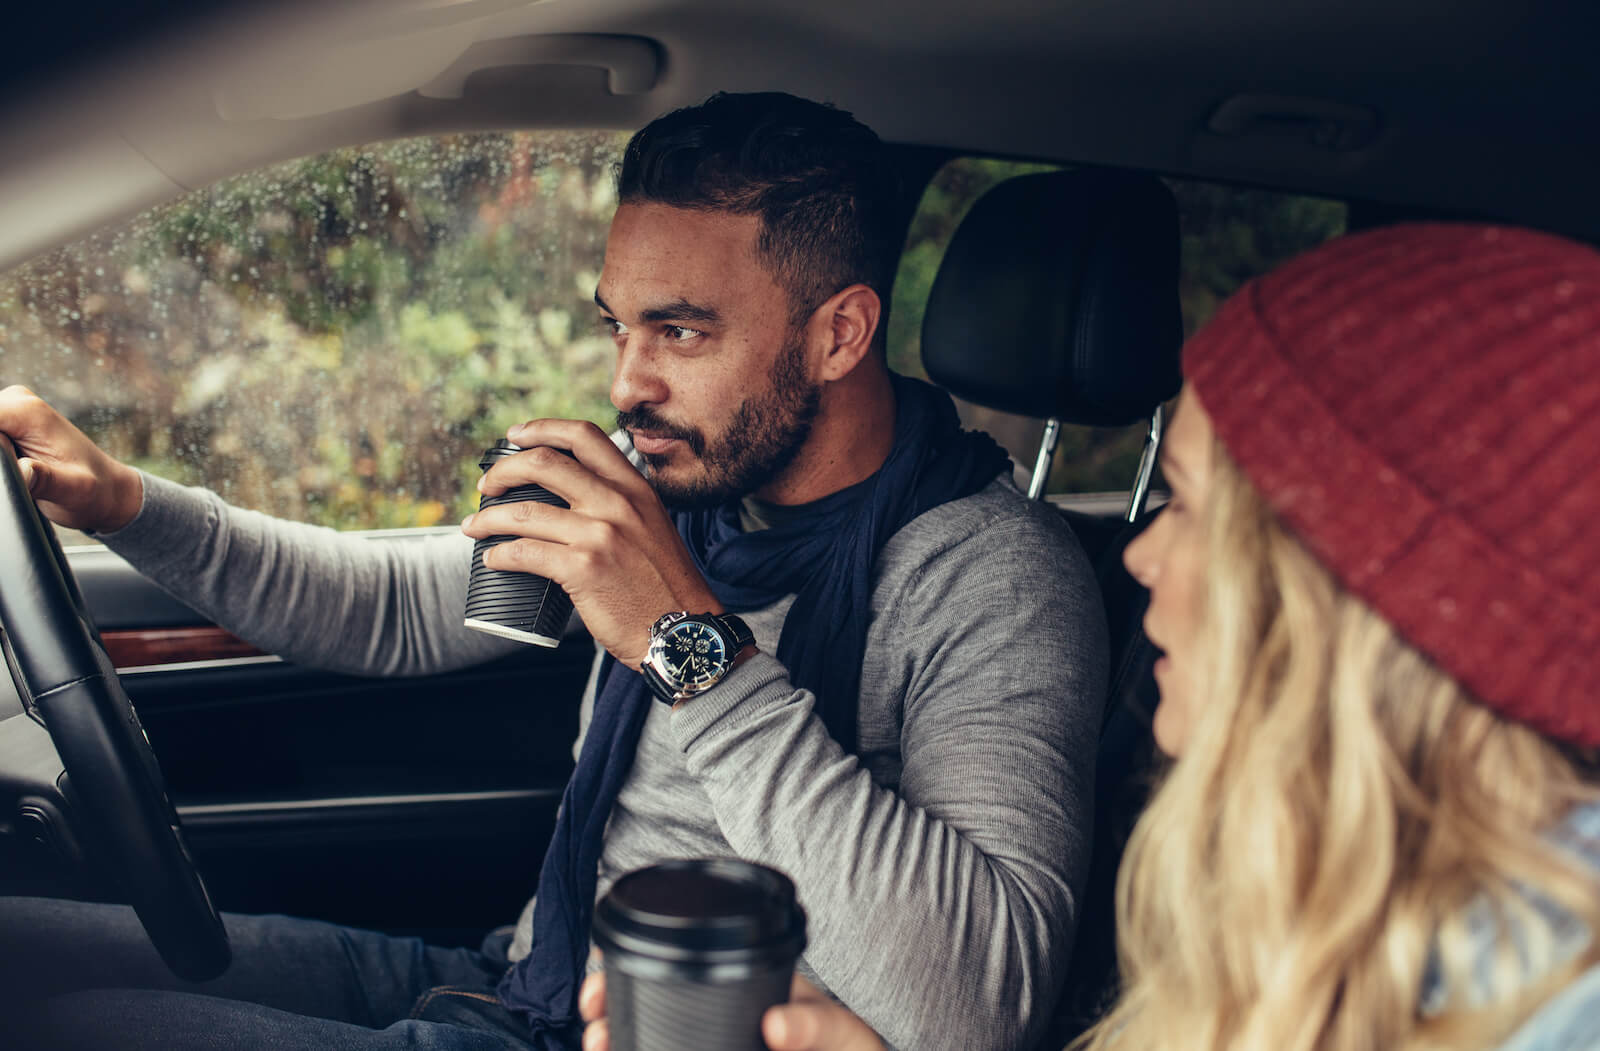 Couple drinking coffee in the car